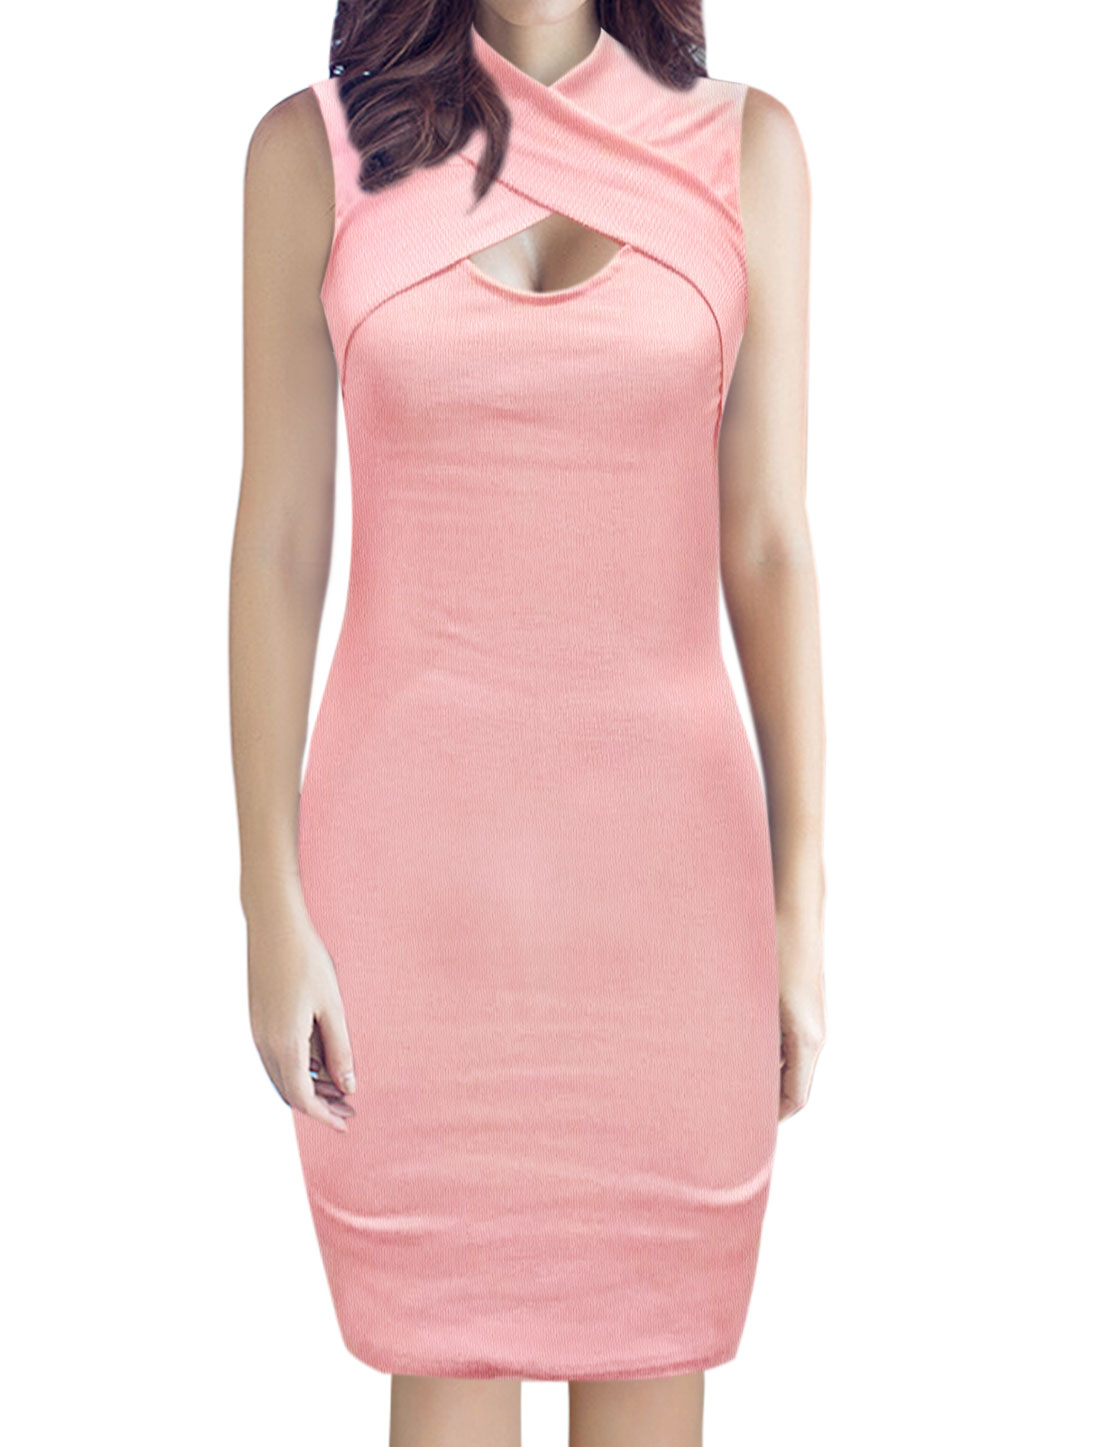 Ladies Sleeveless High Neck Crossover Front Casual Bodycon Dress Pink L